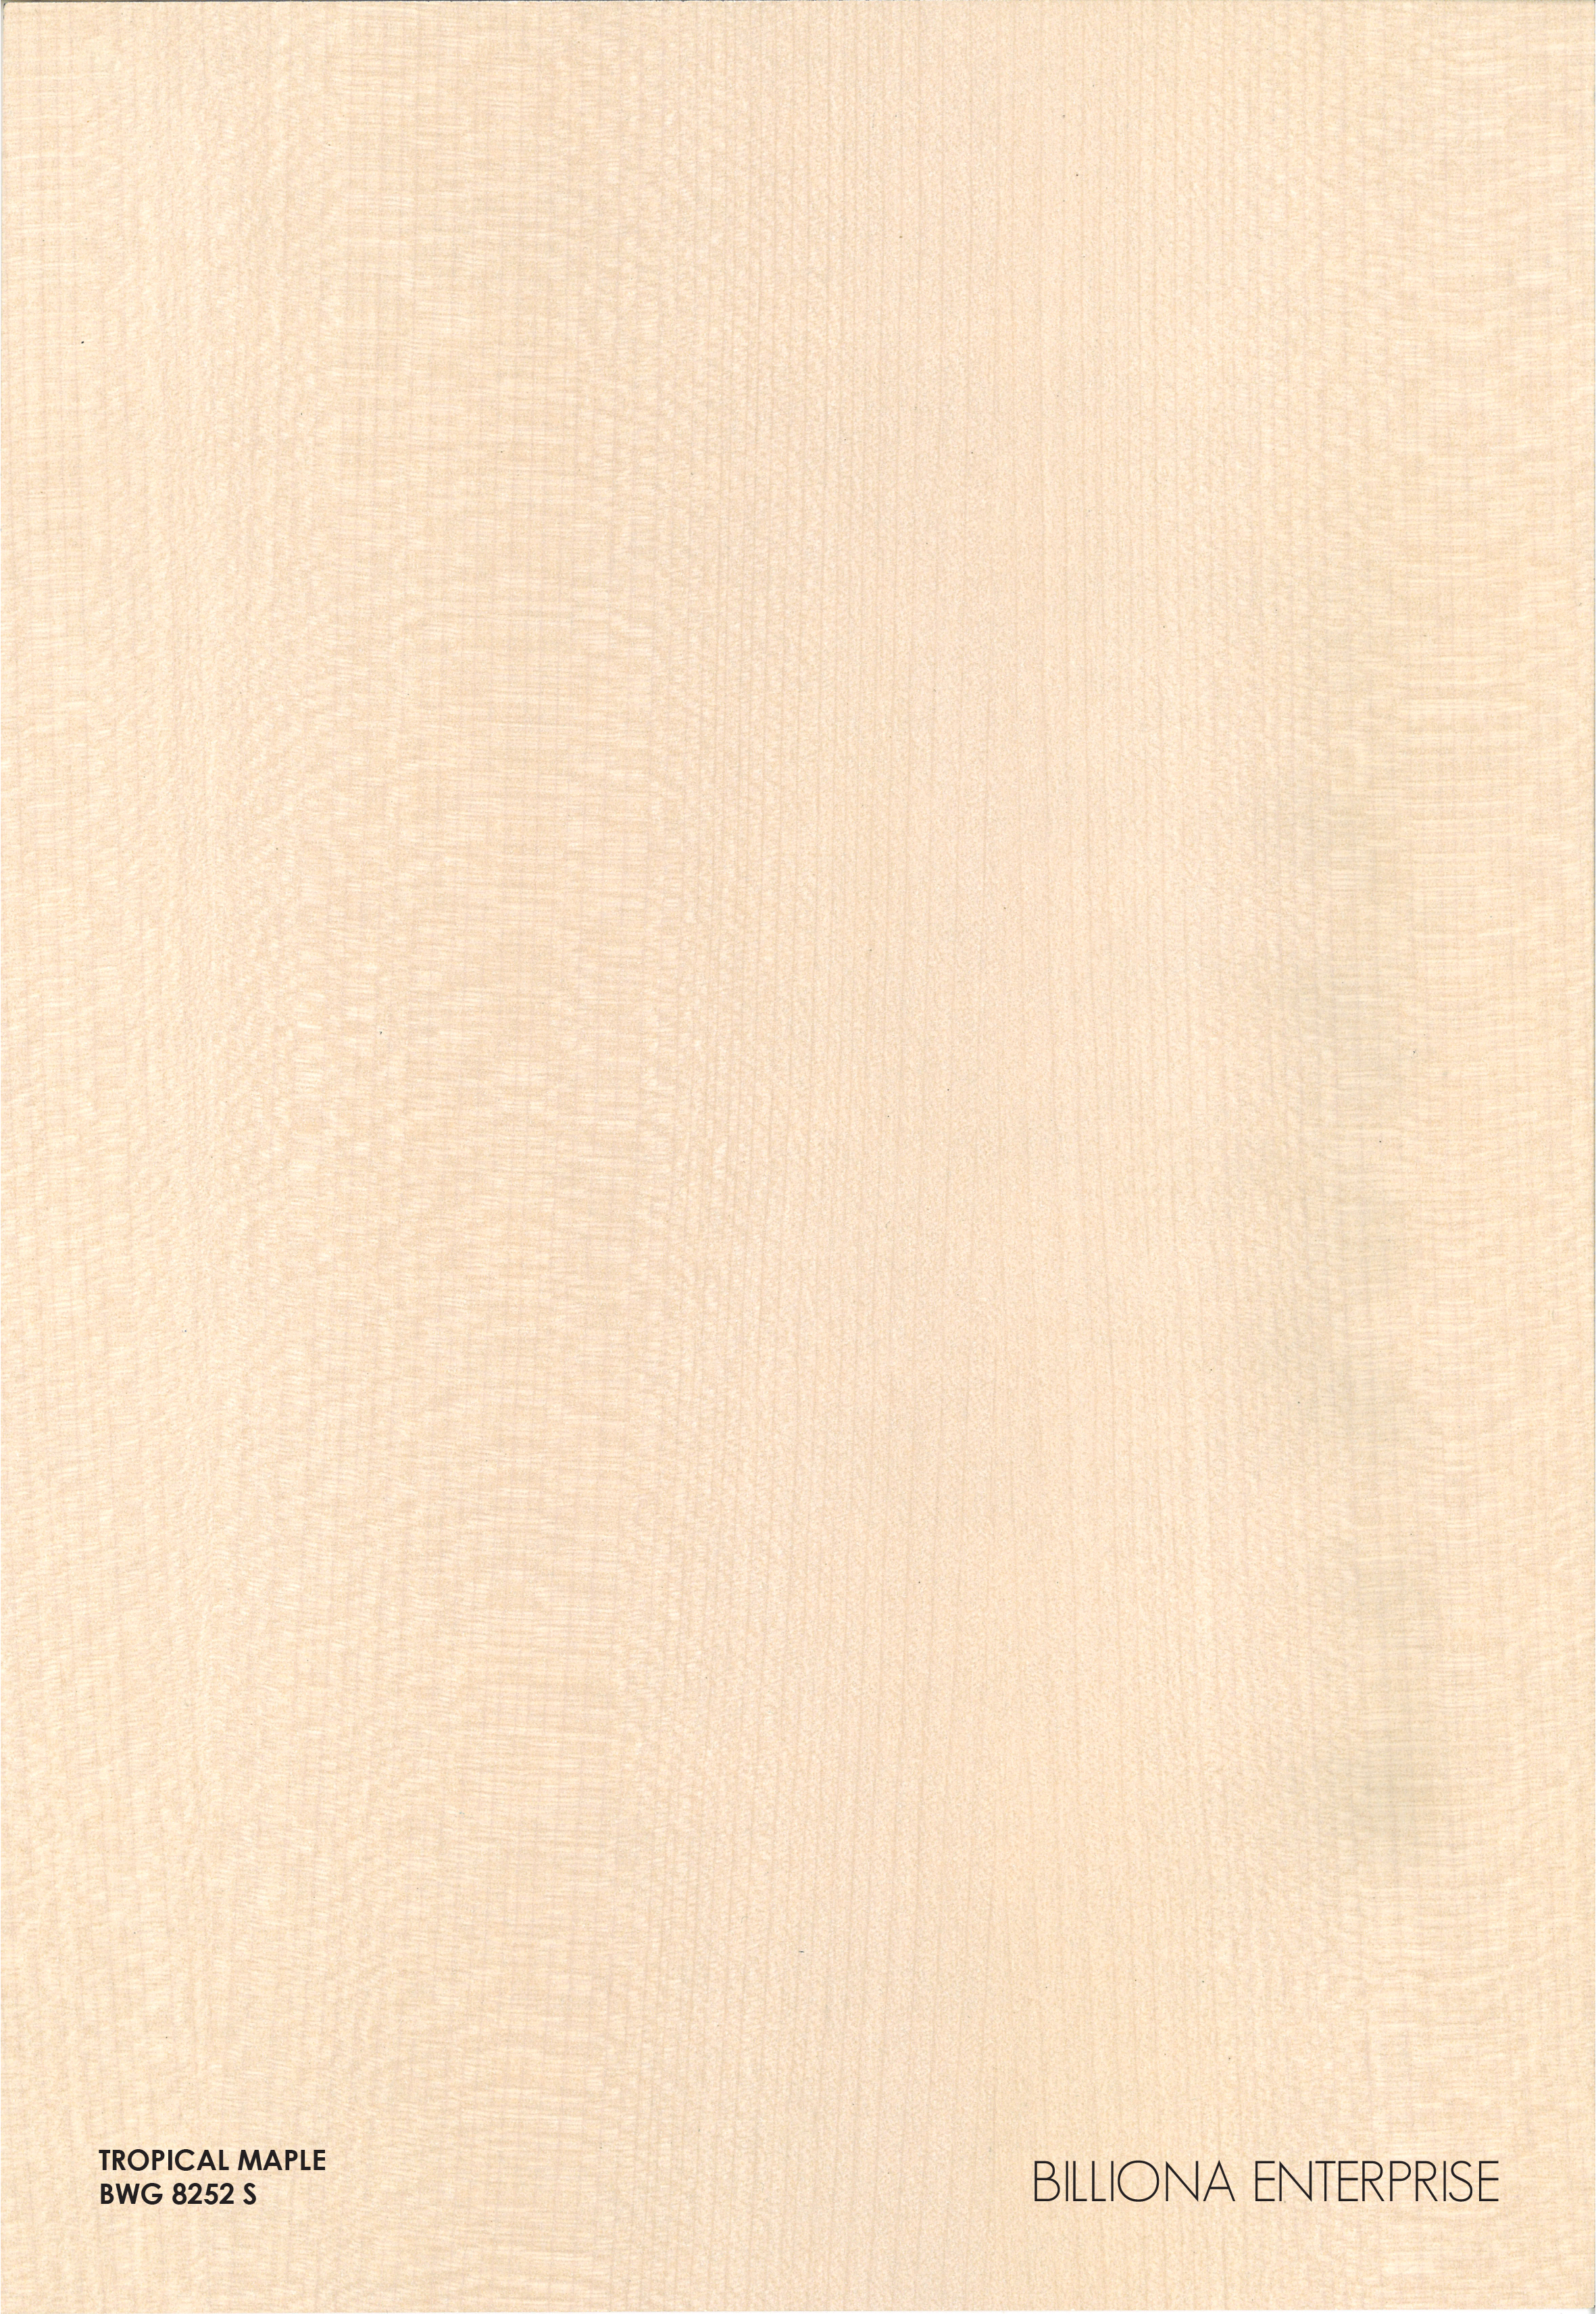 BWG 8252 S - Tropical Maple High Pressure Laminate (HPL), Billiona Enterprise Singapore